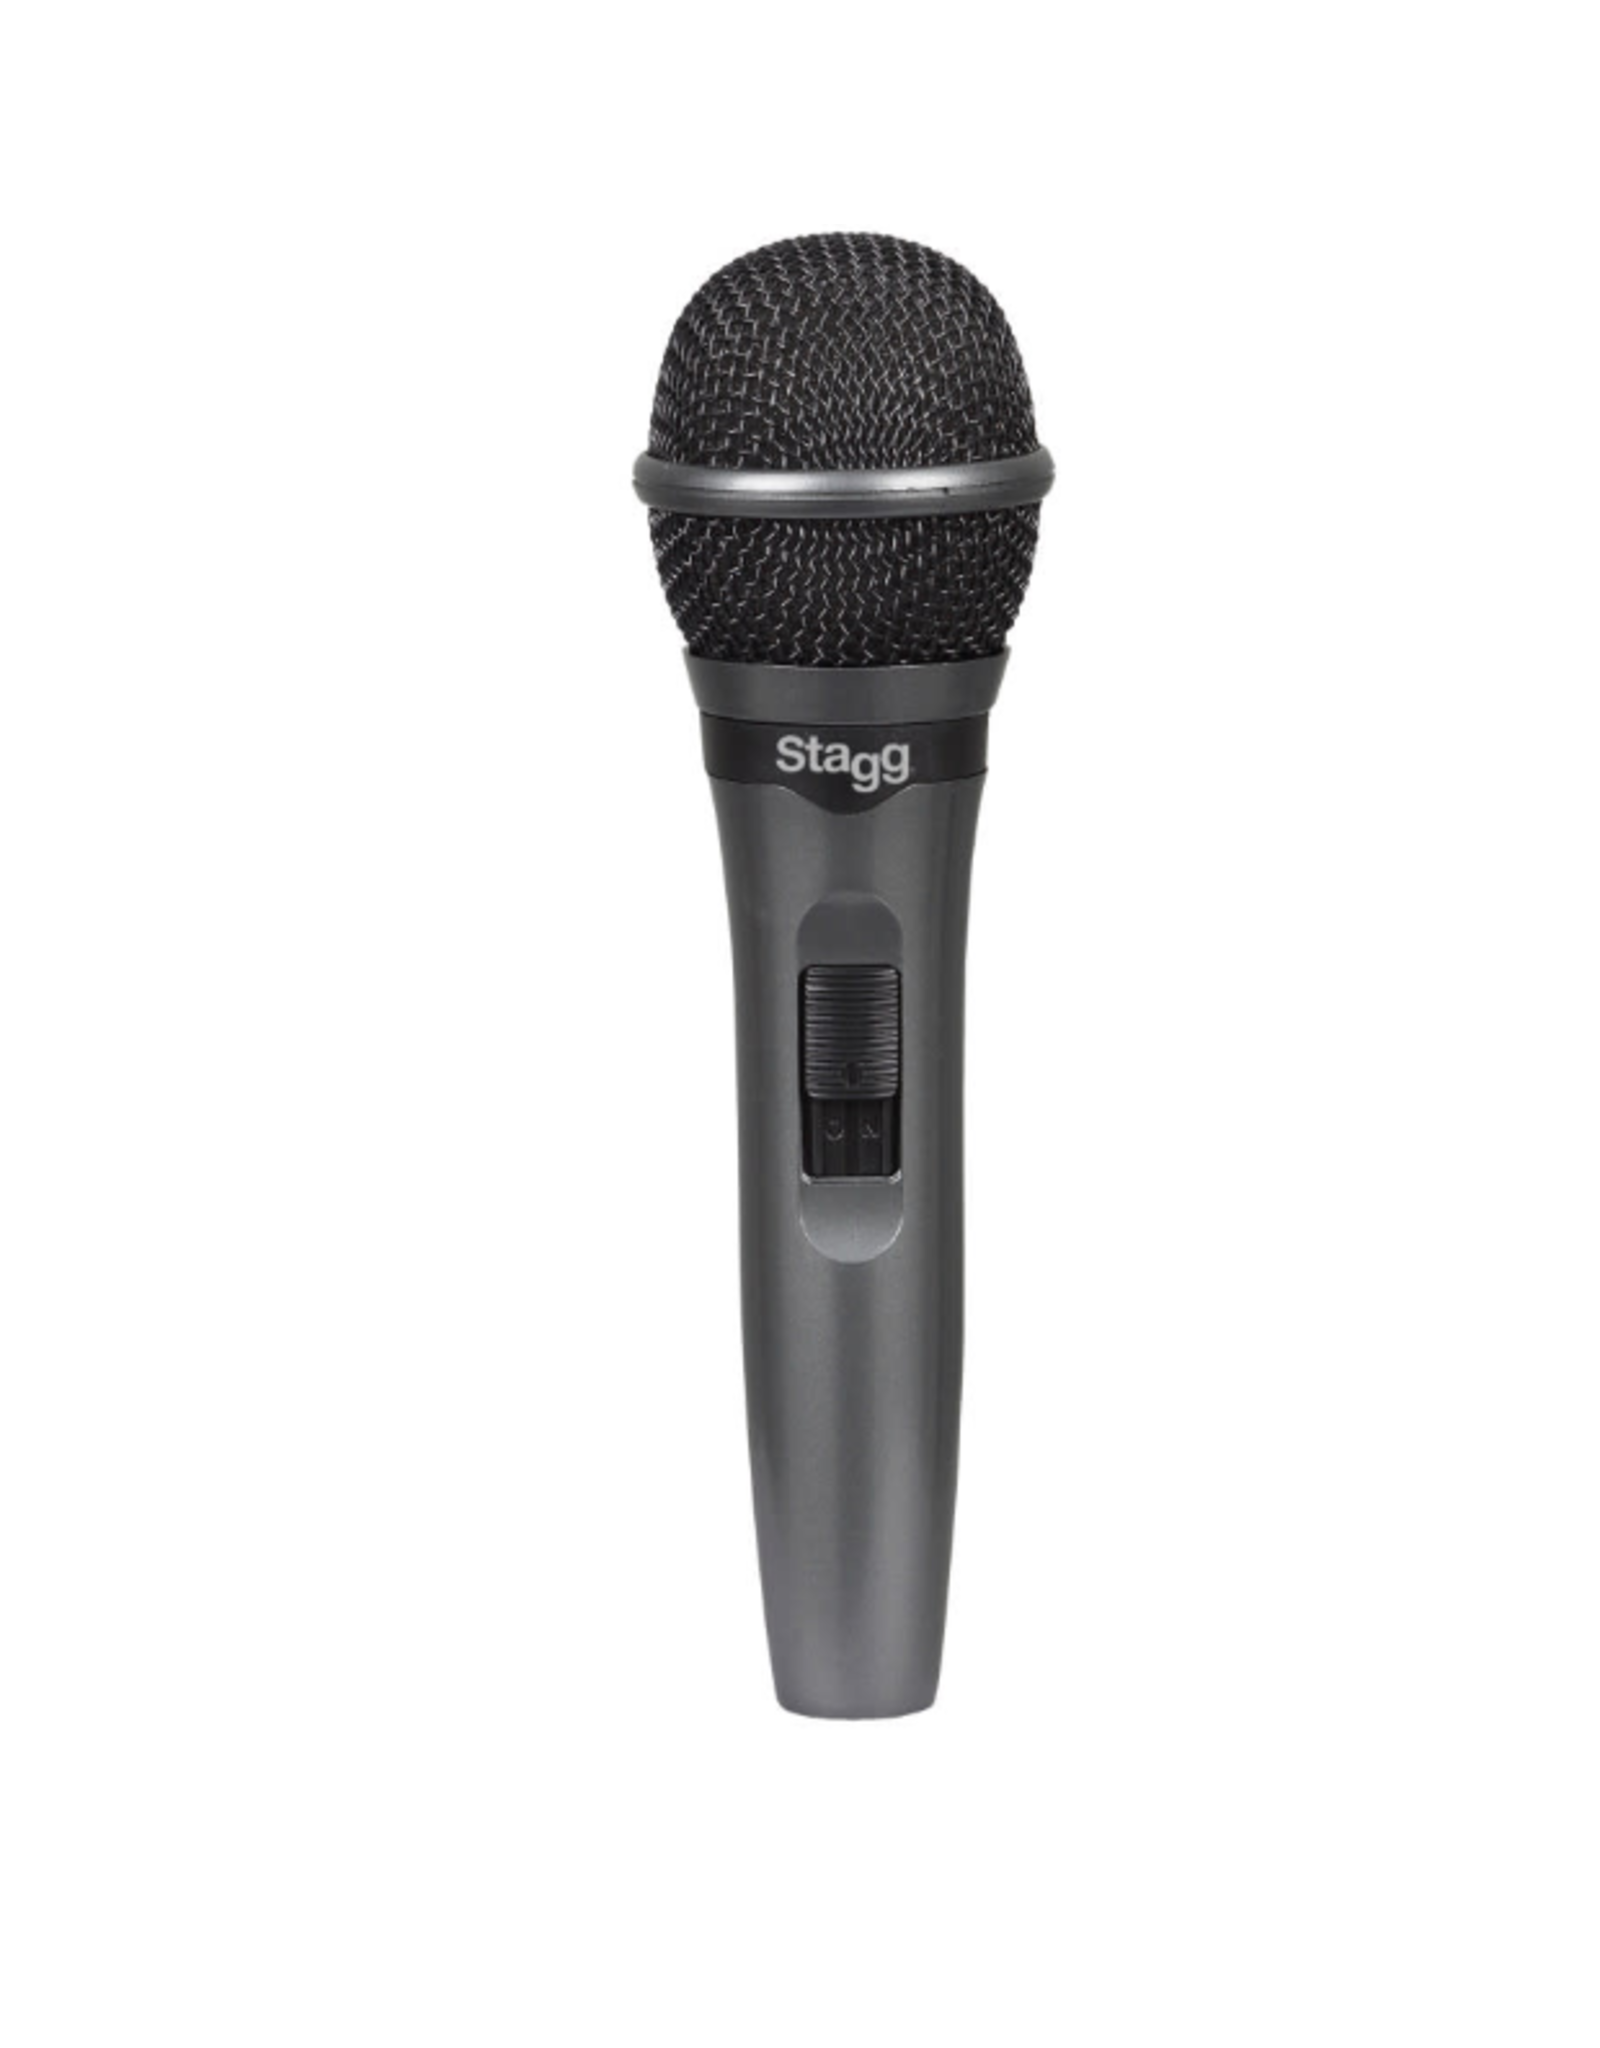 Stagg Stagg SDMP15 Cardioid Dynamic Microphone